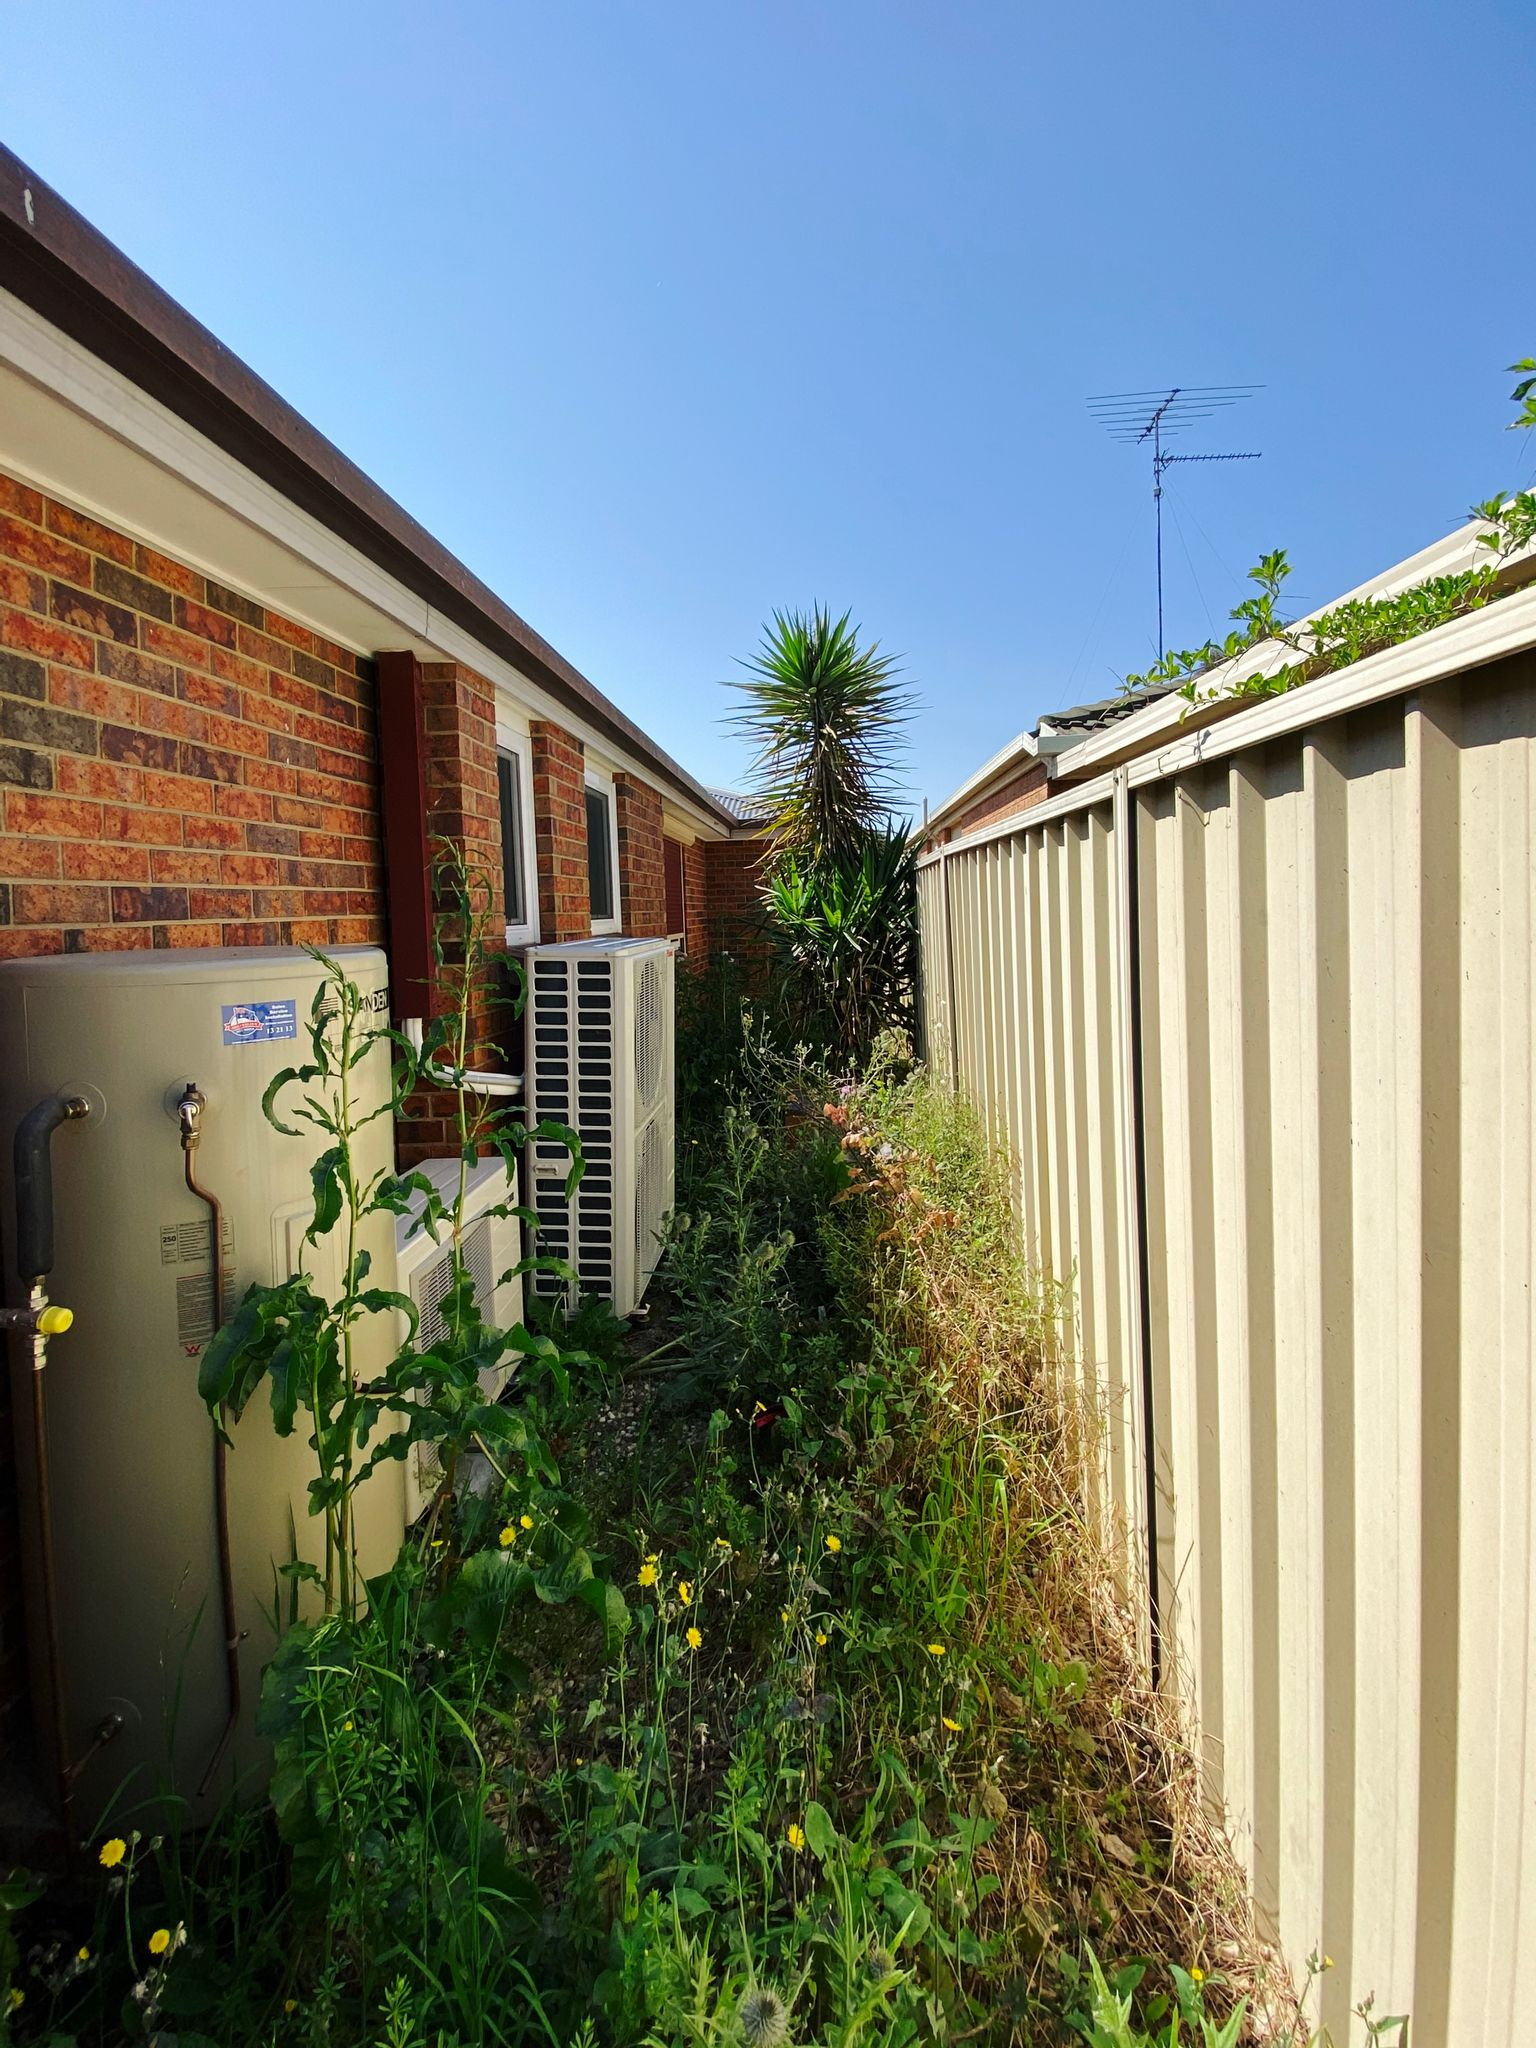 A photo of a relatively narrow section of yard with a cream-coloured fence on the right and a red brick house on the left. A hot water tank and air conditioning compressor are visible against the wall of the house, and the ground is FILLED with weeds, lots of them waist- and even chest-high.